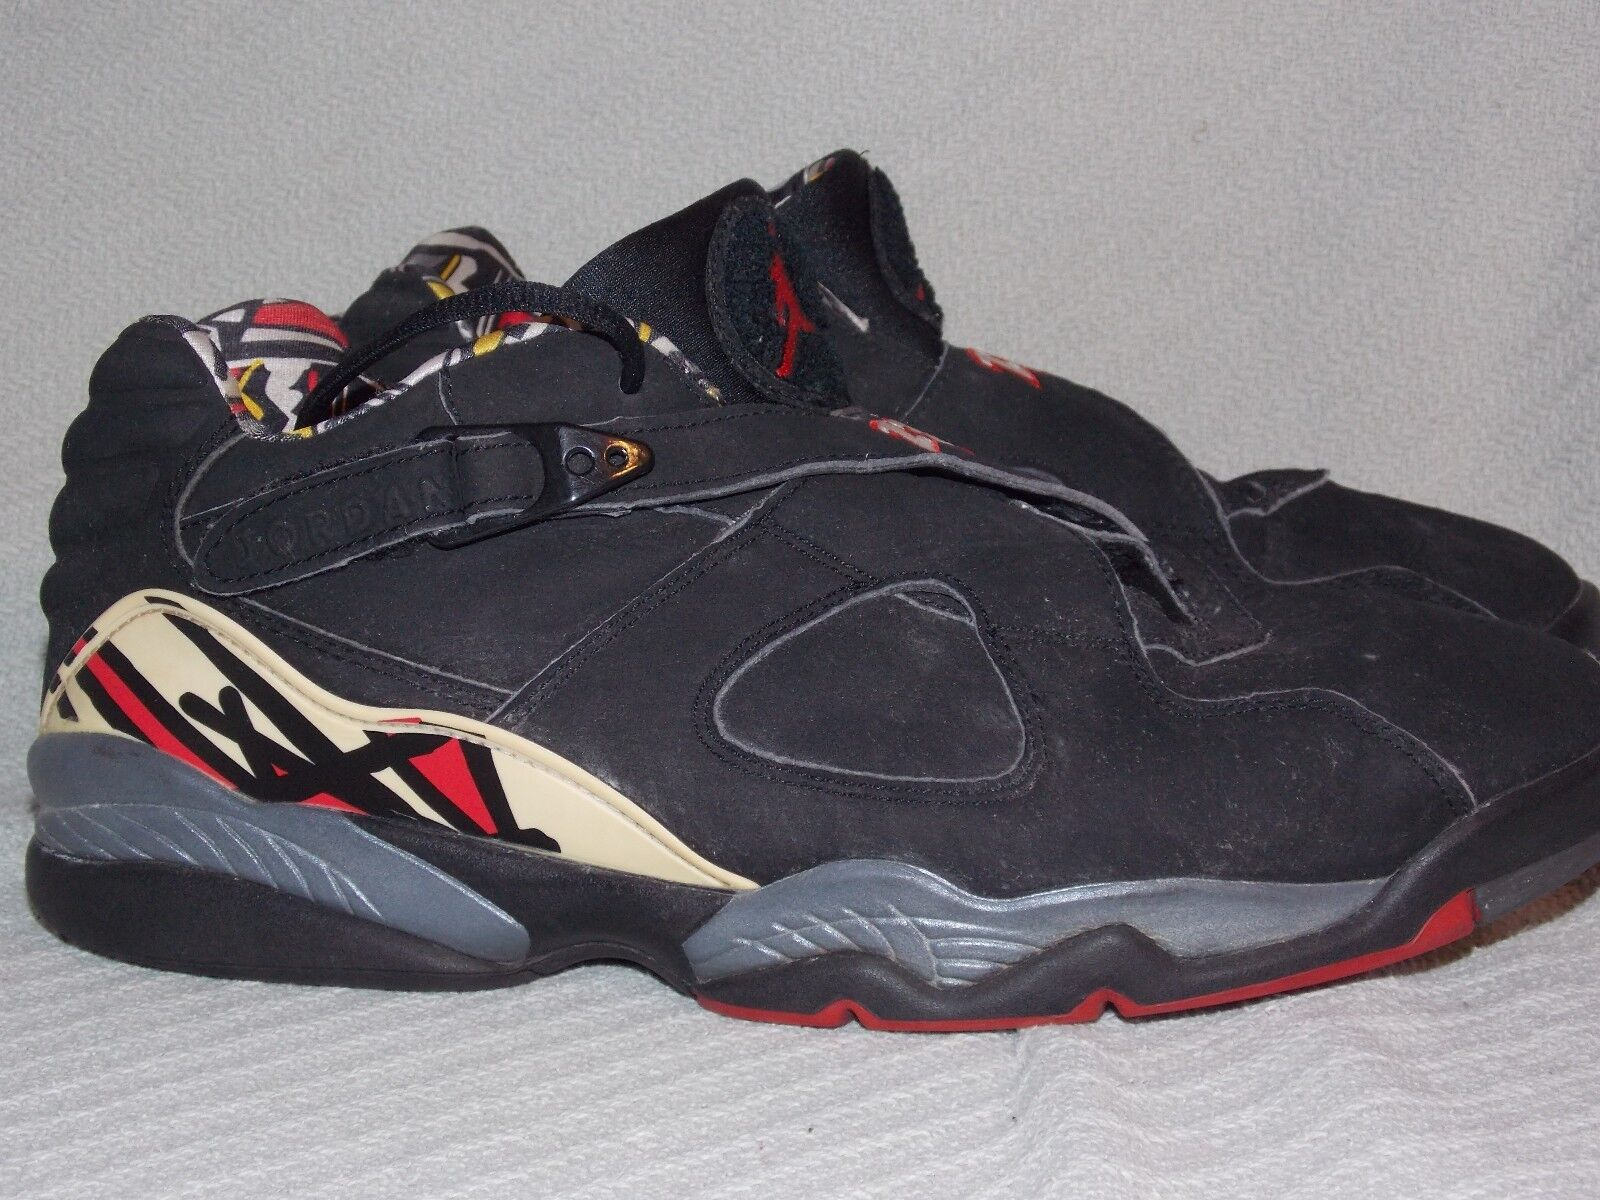 Nike Air Jordan VIII Retro Low sz 11.5 M Playoff Black Multi-color 306157-061